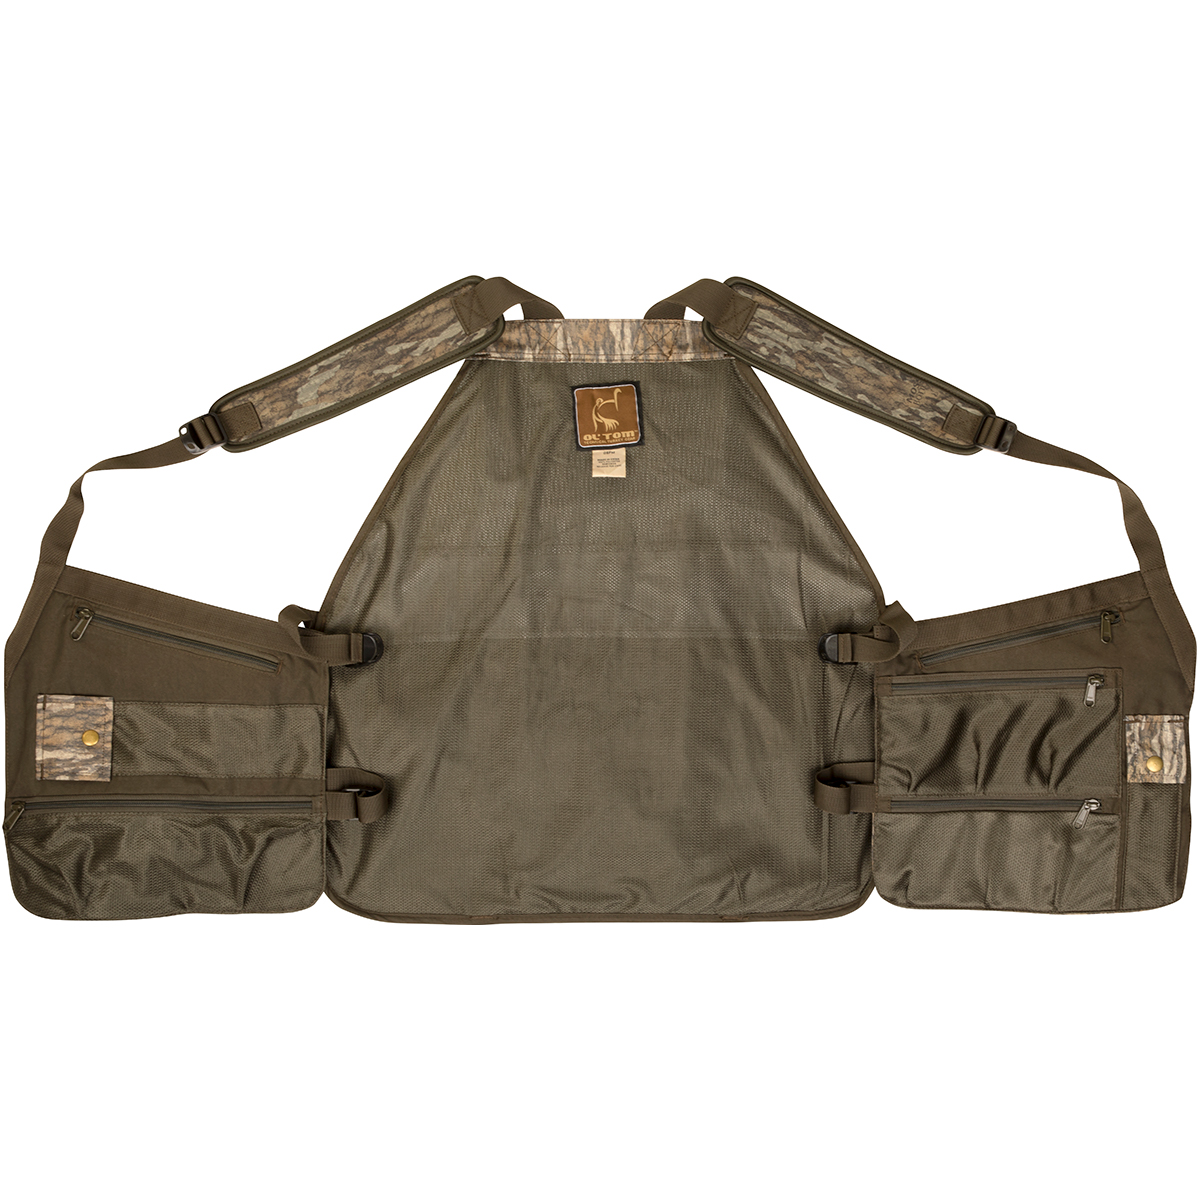 Drake-Ol-Tom-Easy-Rider-Turkey-Vest-Mossy-Oak-Bottomland-Inside-Big-Tall-BigCamo